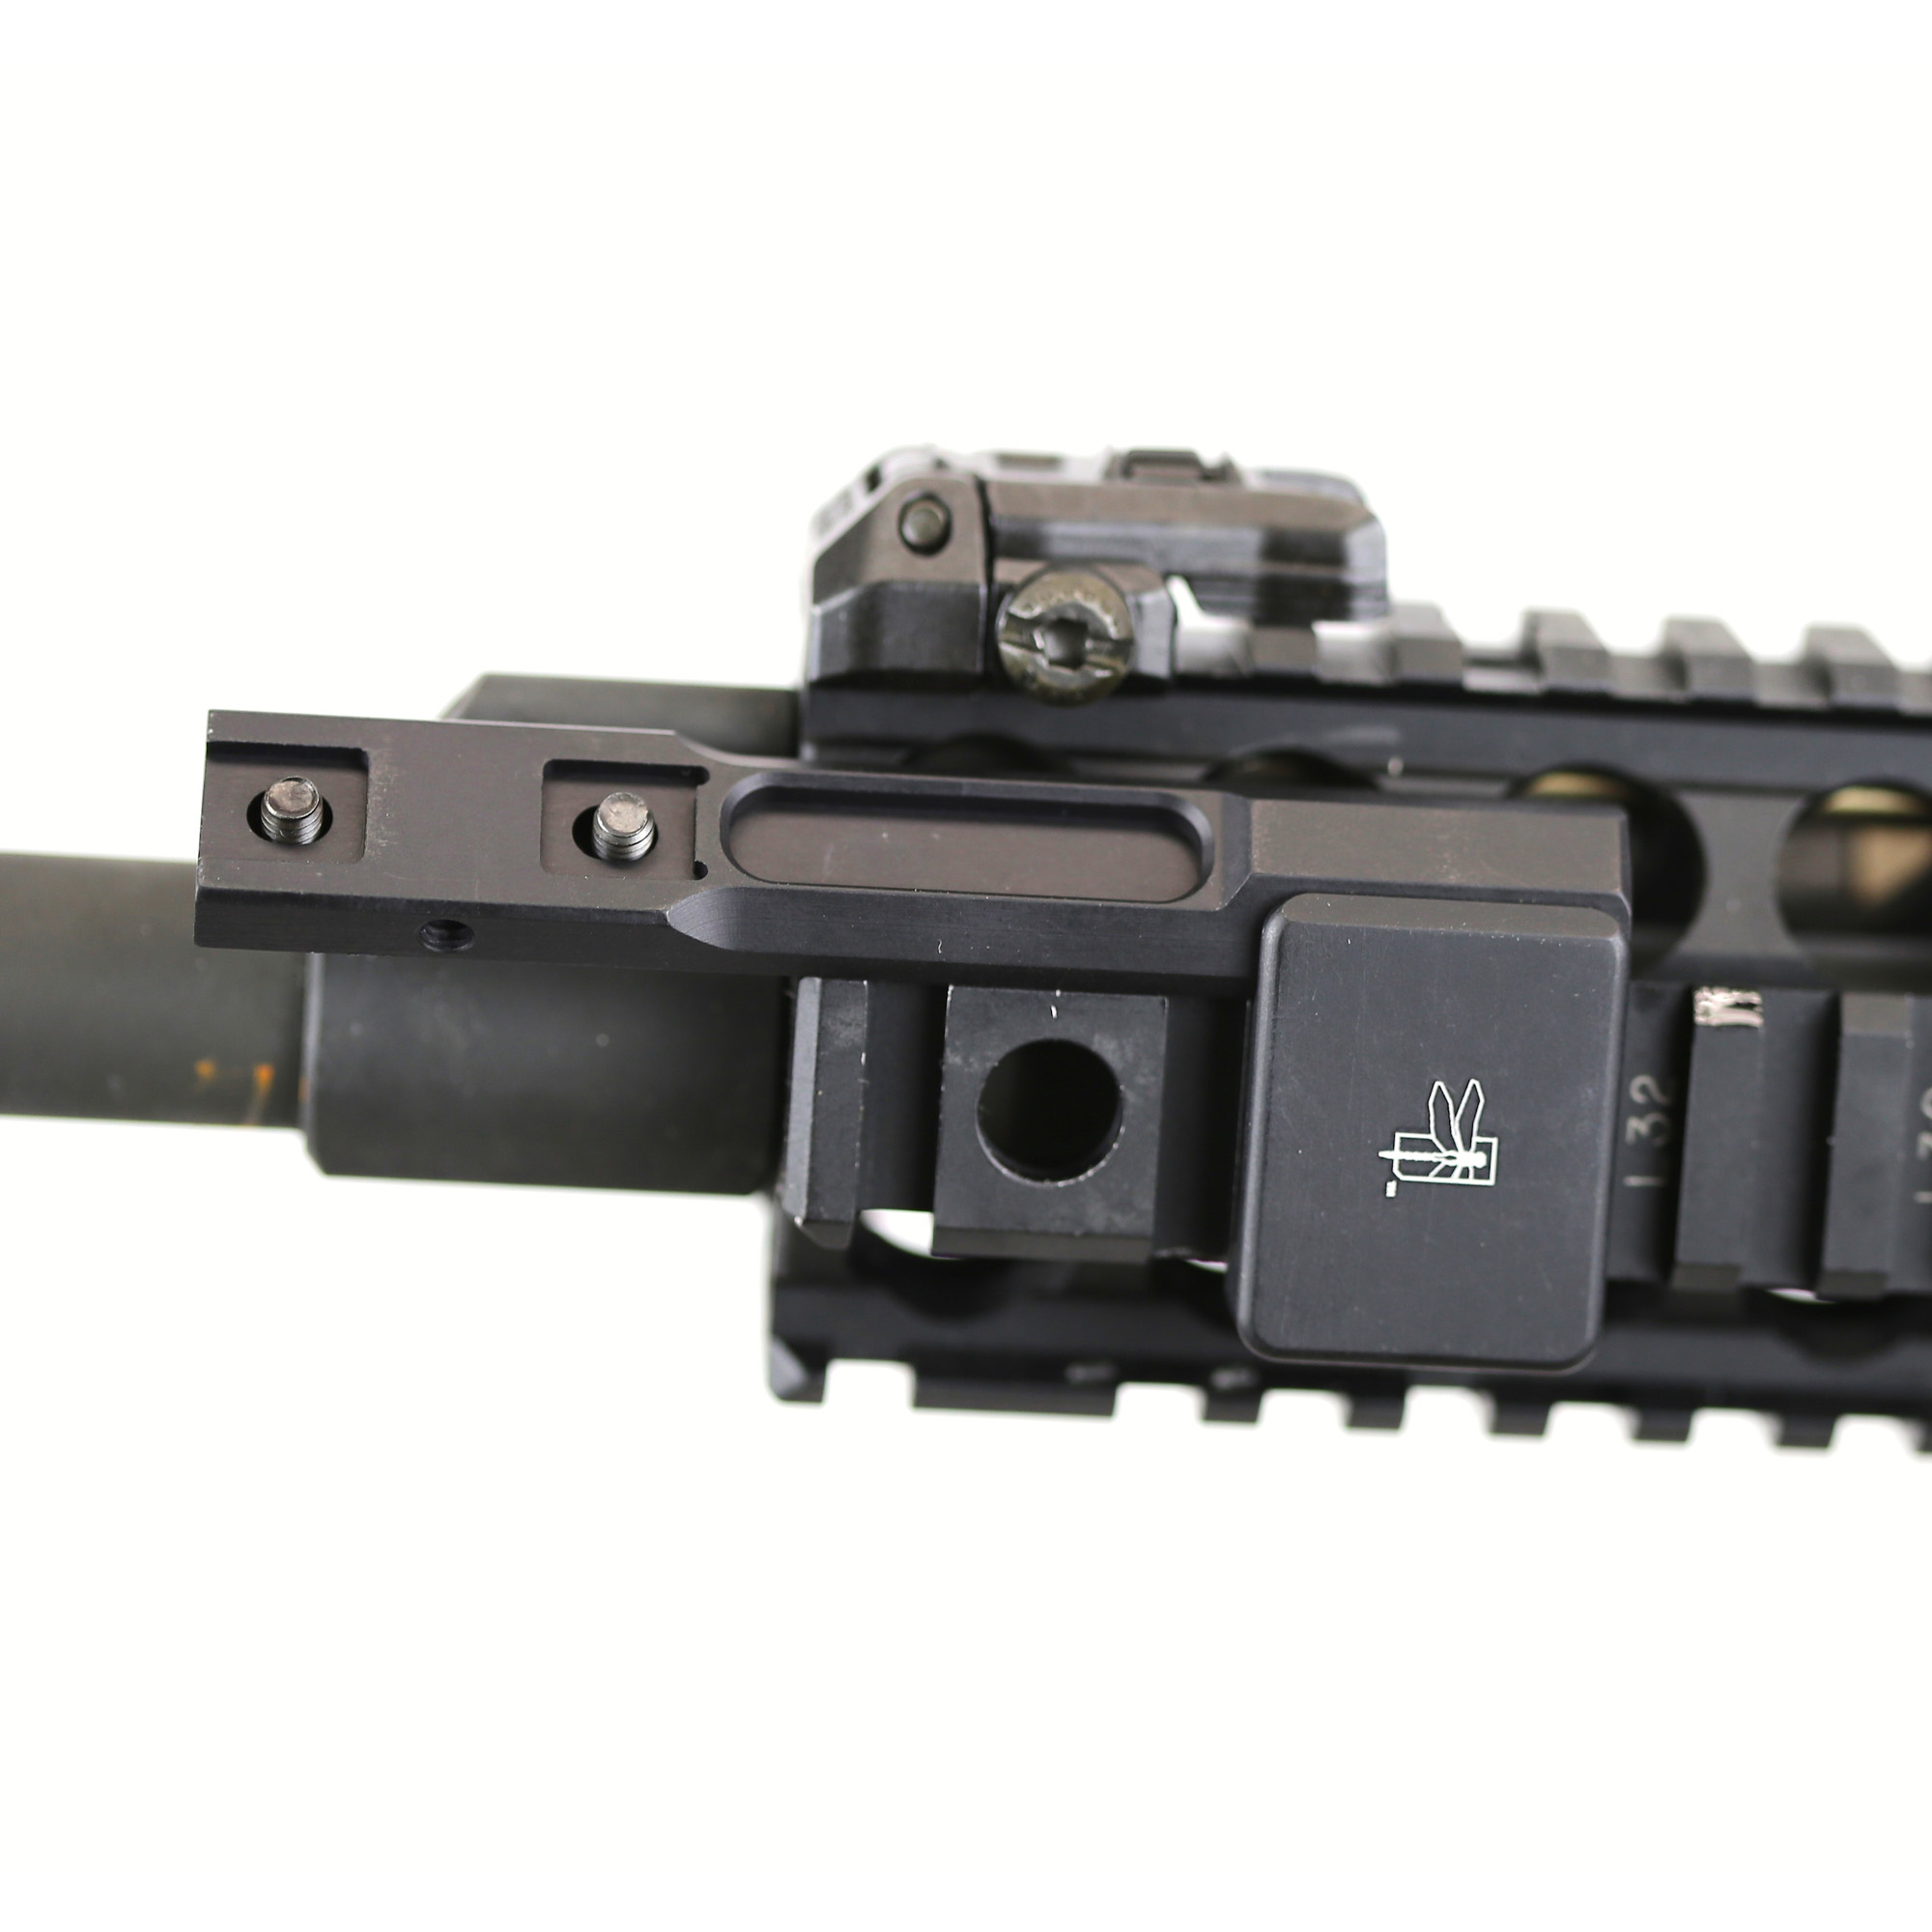 """Impact Weapons Components Thorntail Offset Adaptive Light Mount is designed to accept Surefire M300/M600 Scout Light. It is specifically designed to extend the weapon light several inches beyond the end of the forend or rail system. Thorntail attaches to any 1913 Picatinny rail"""" is fully ambidextrous and provides 8 different mounting solutions on a single rail system. Each Thorntail comes complete with the necessary instructions"""" tools and hardware required to attach your light to your weapon."""